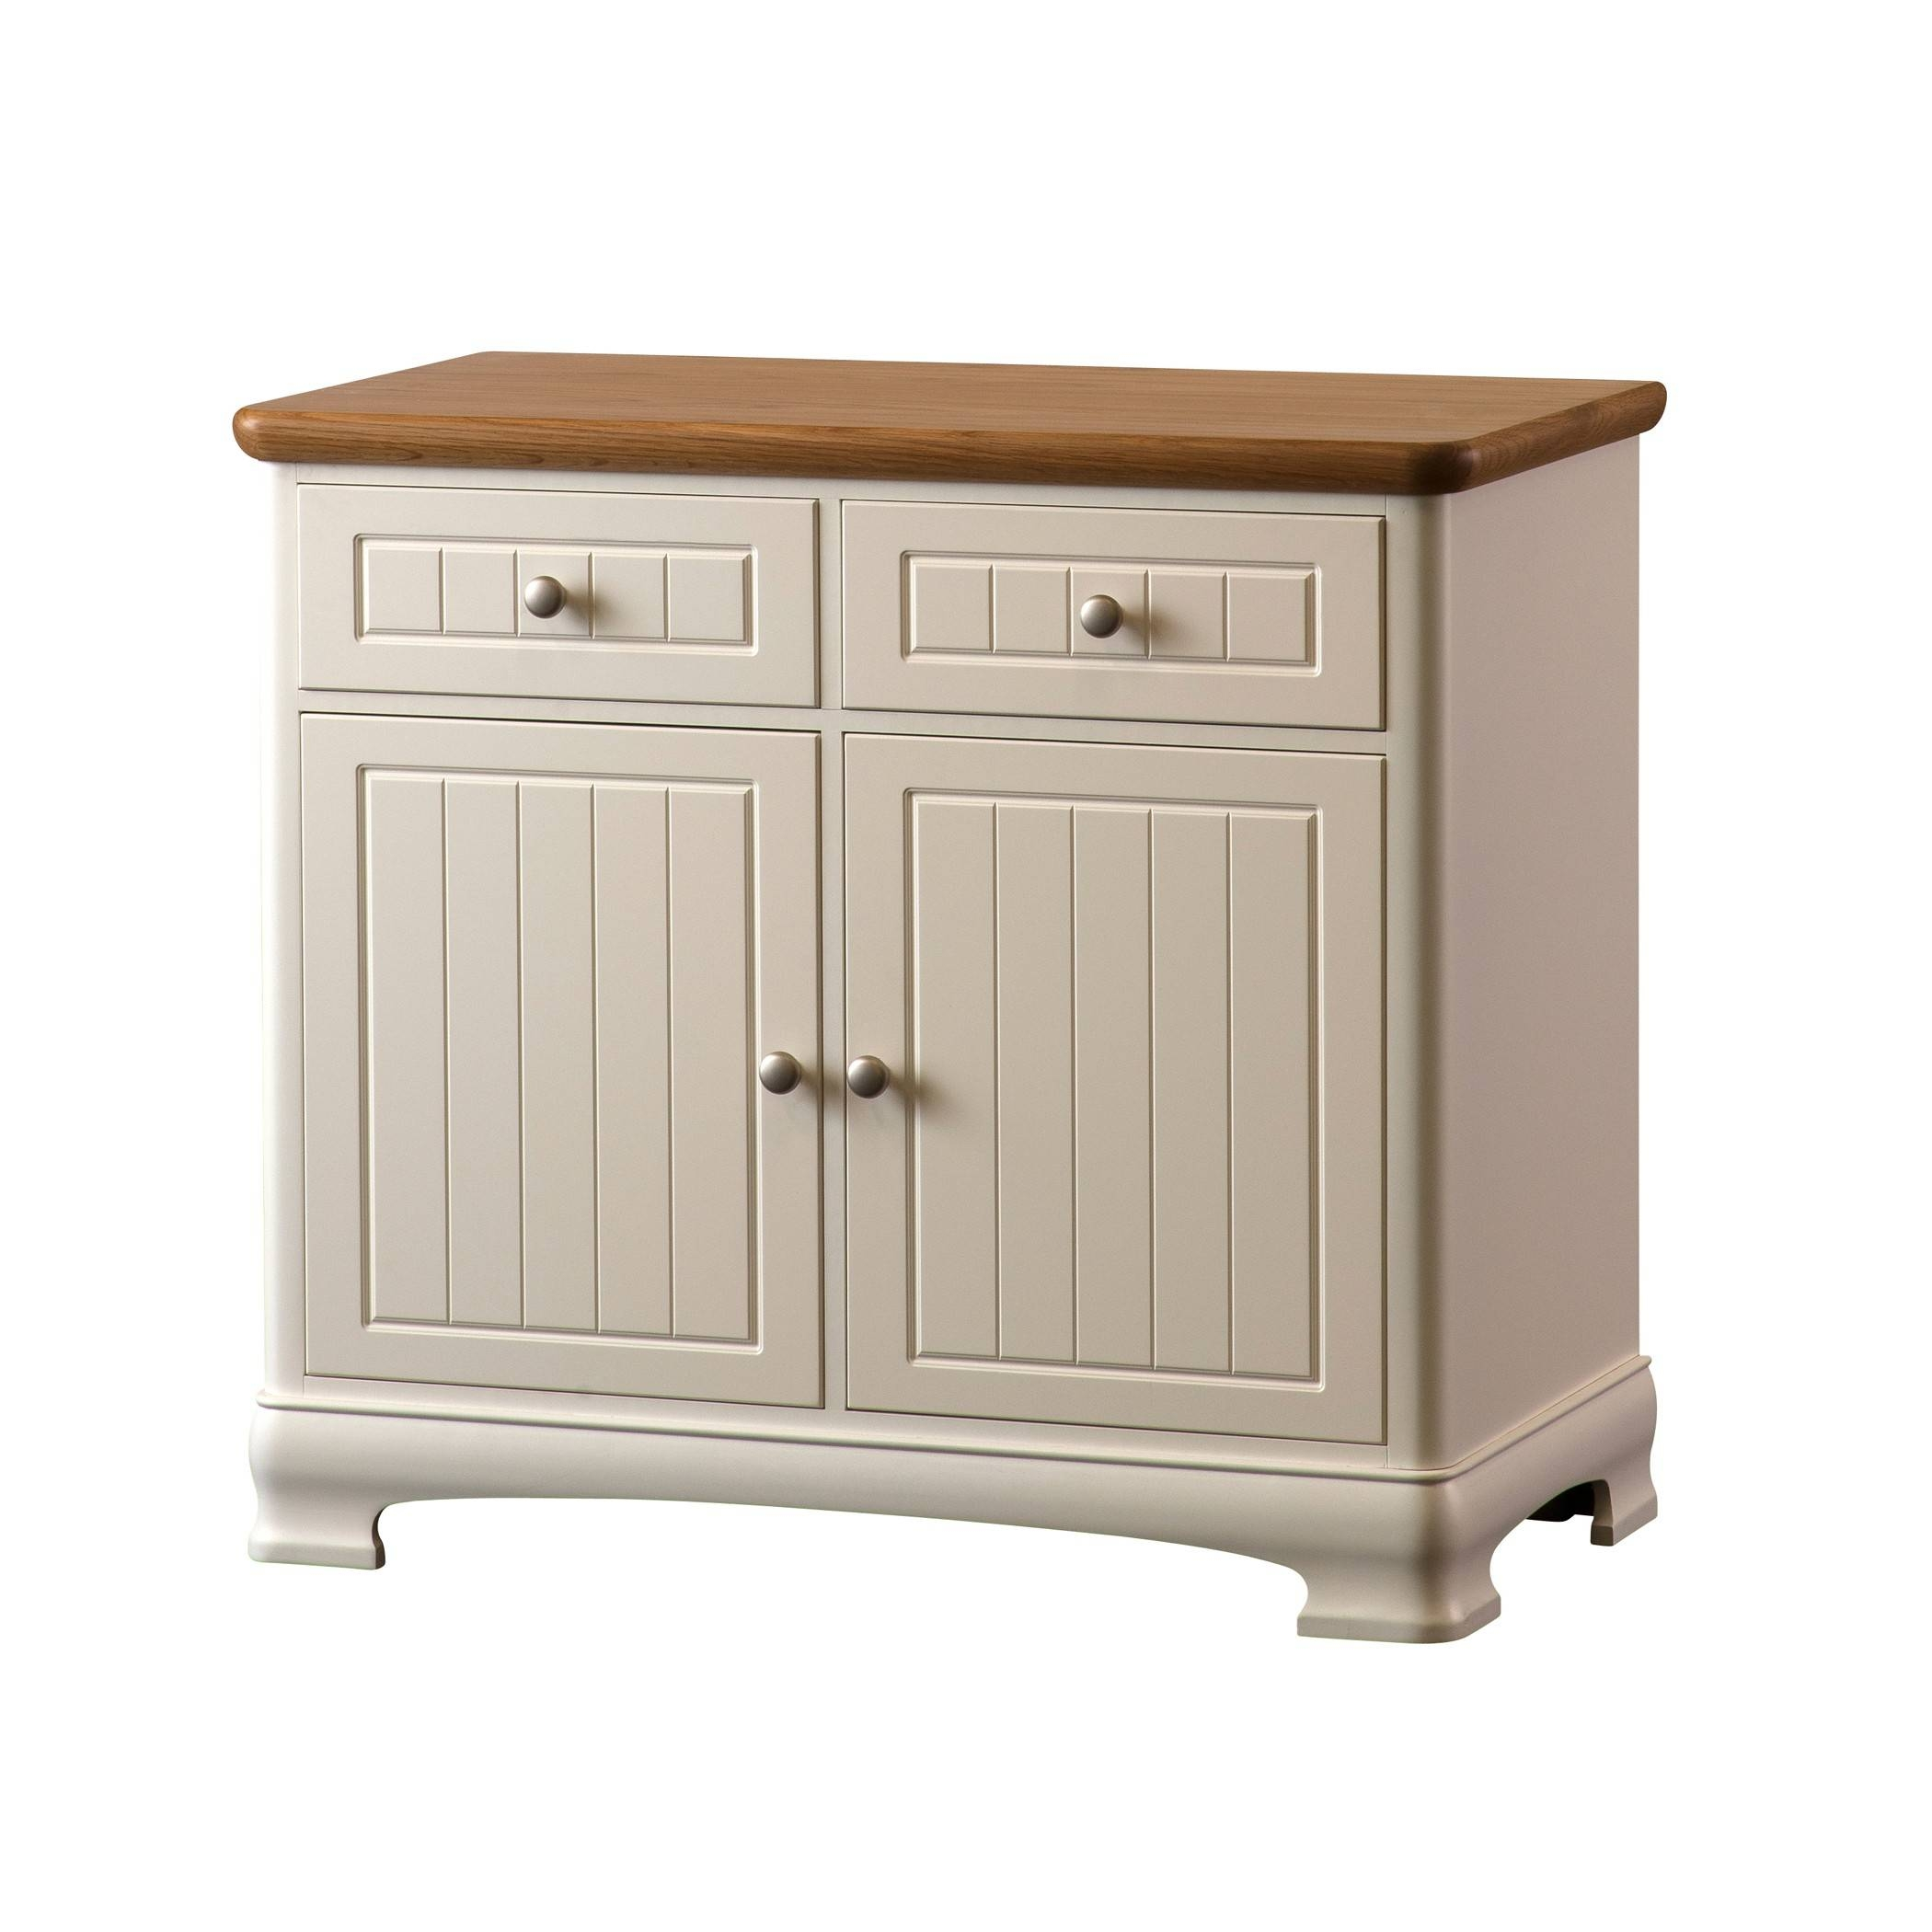 Painted Small Two Door Sideboard With Two Drawers | Gola Furniture Uk With Latest Small Cream Sideboards (#9 of 15)